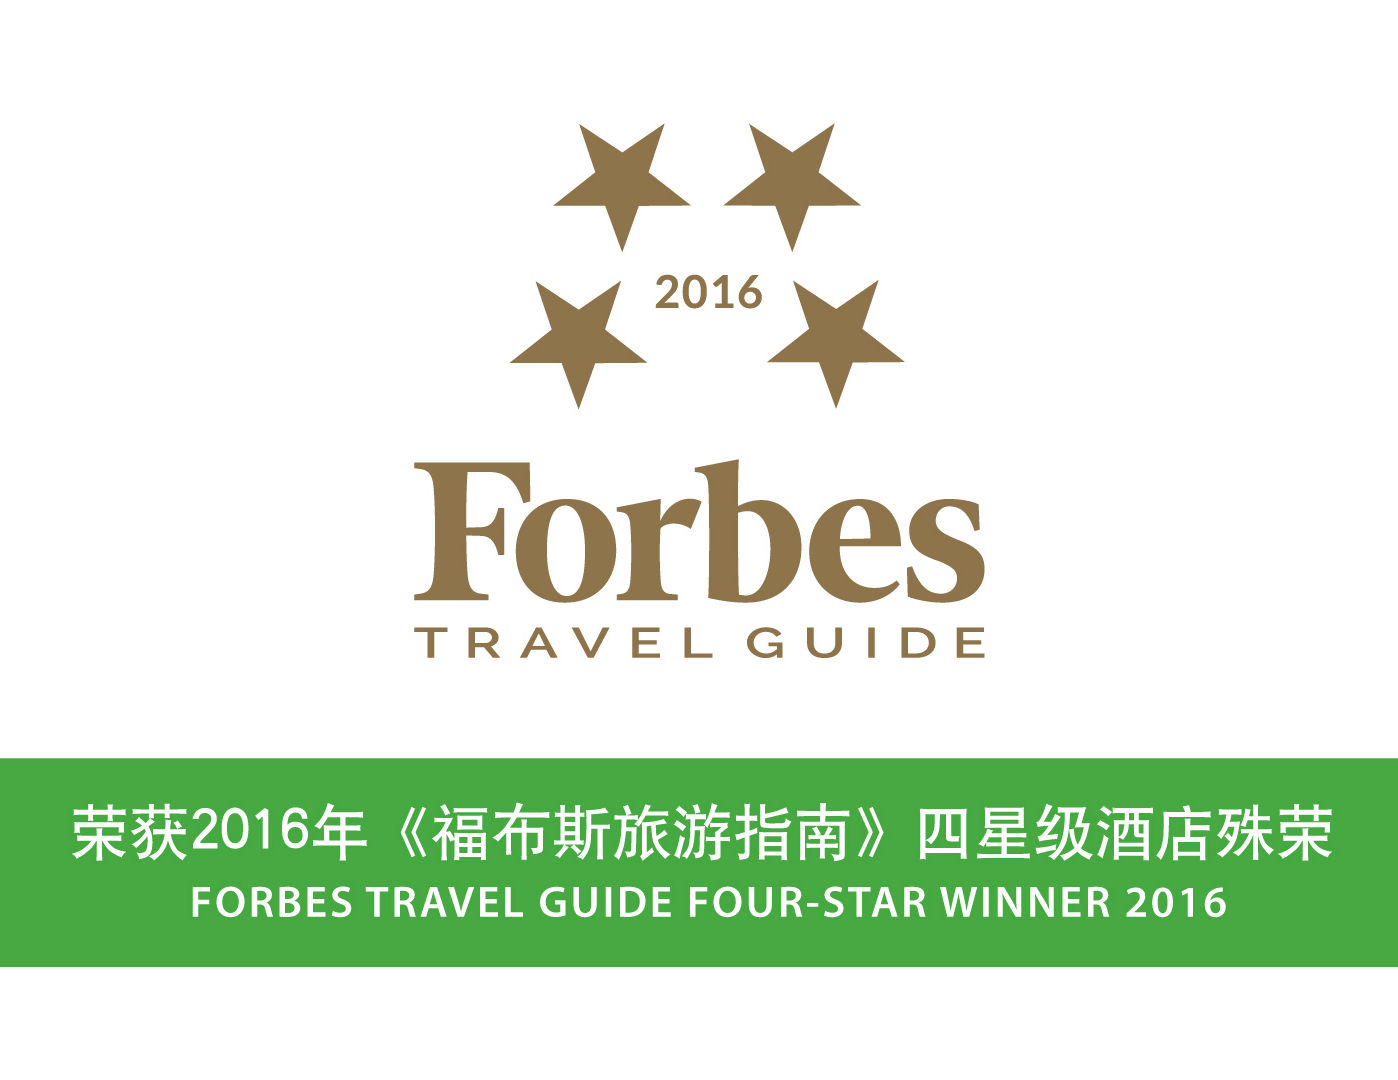 FORBES TRAVEL GUIDE FOUR-STAR WINNER 2016